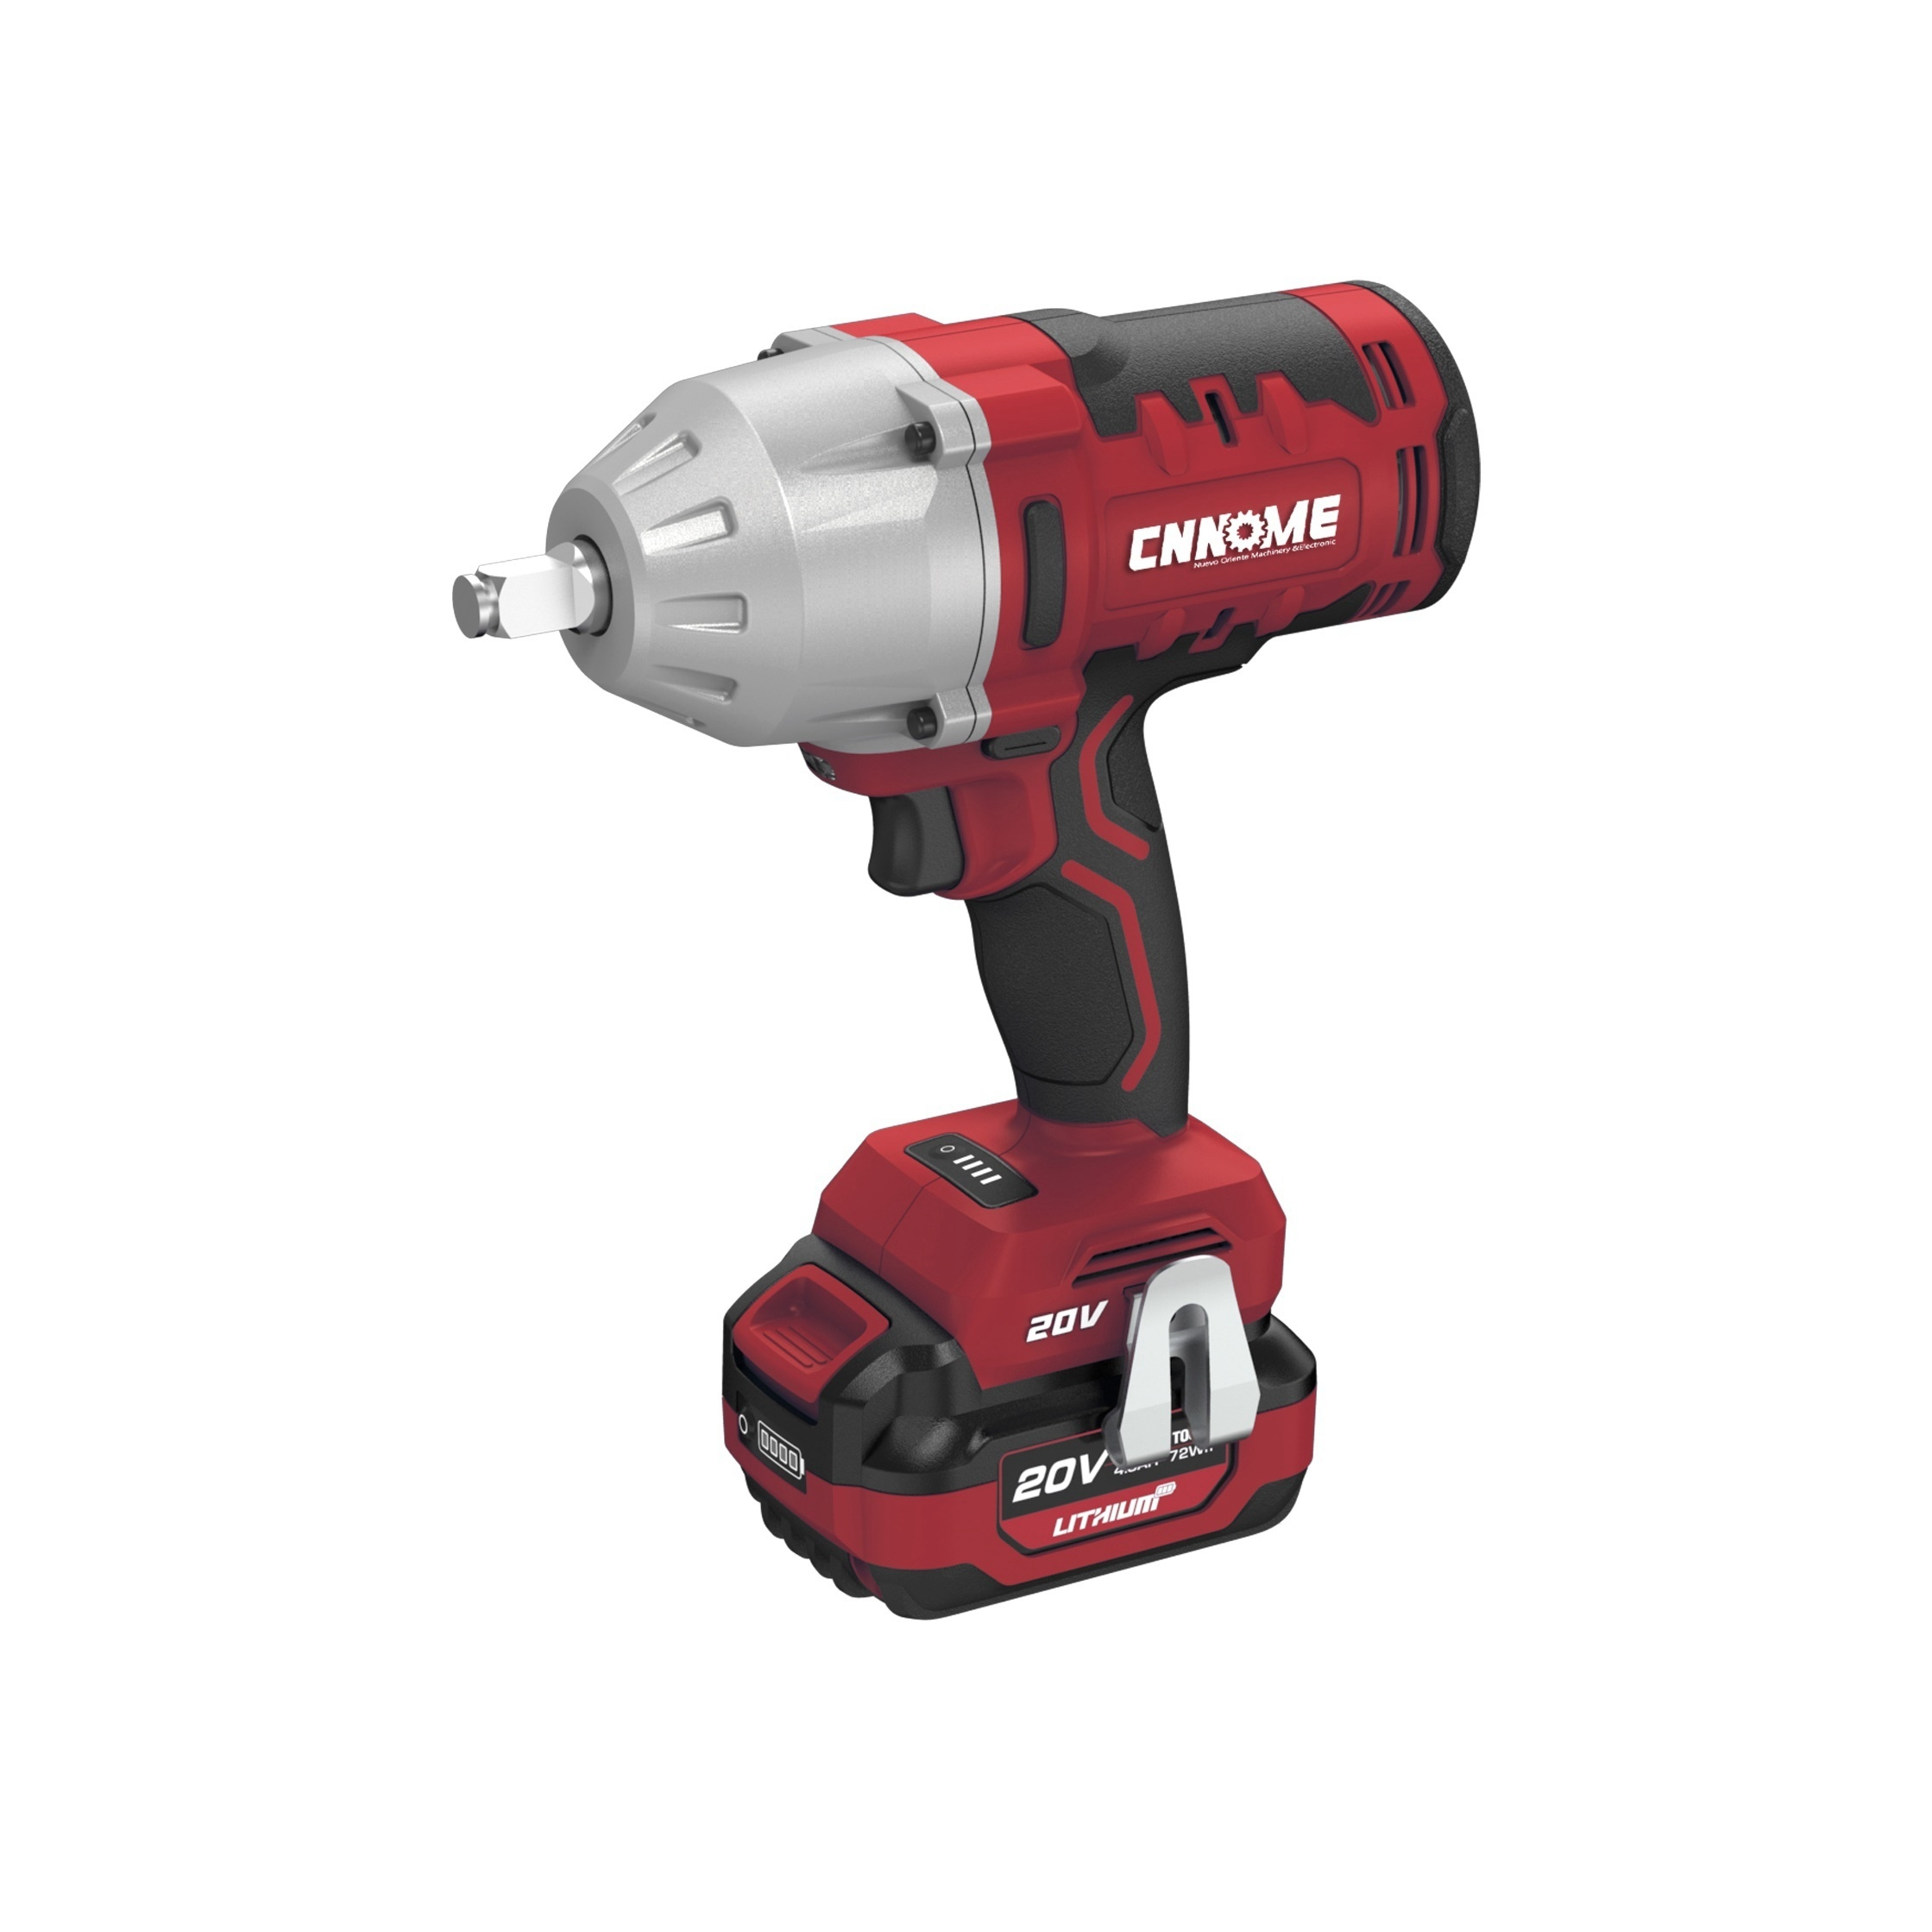 Heavy Duty Cordless 20V Brushless Super Torque 1000nm Impact Wrench Power Tools